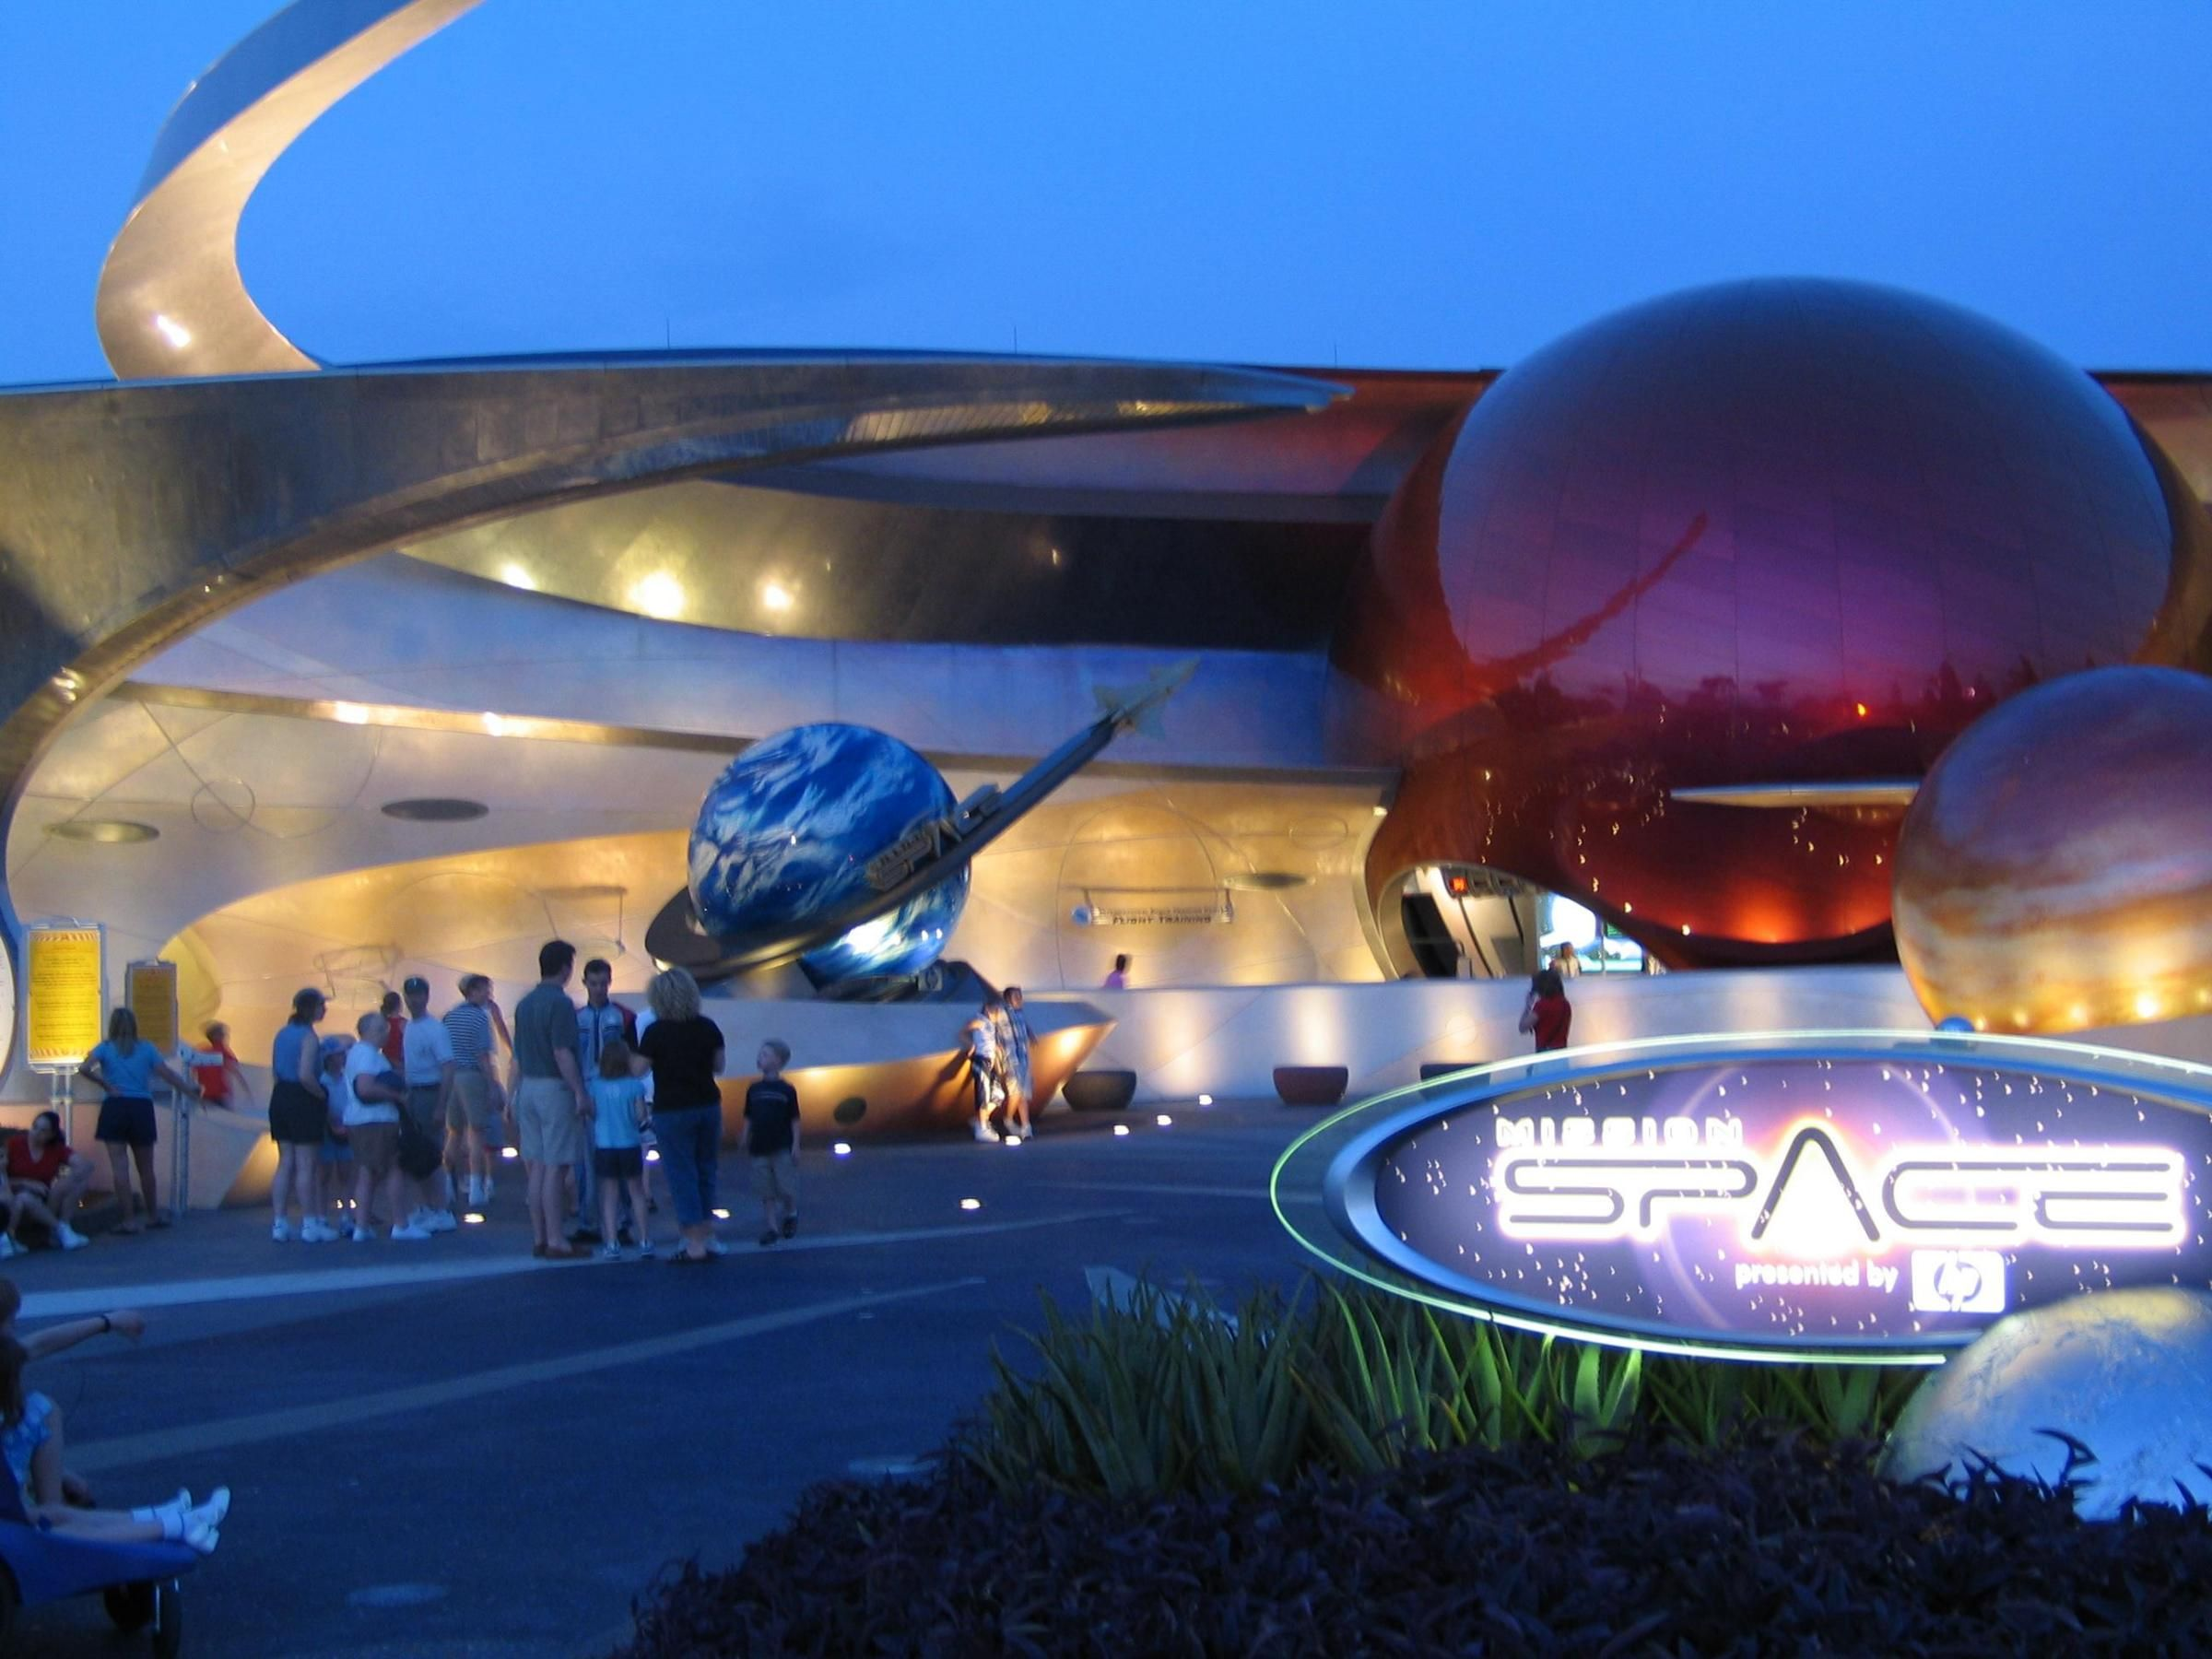 mission to mars ride epcot - photo #39